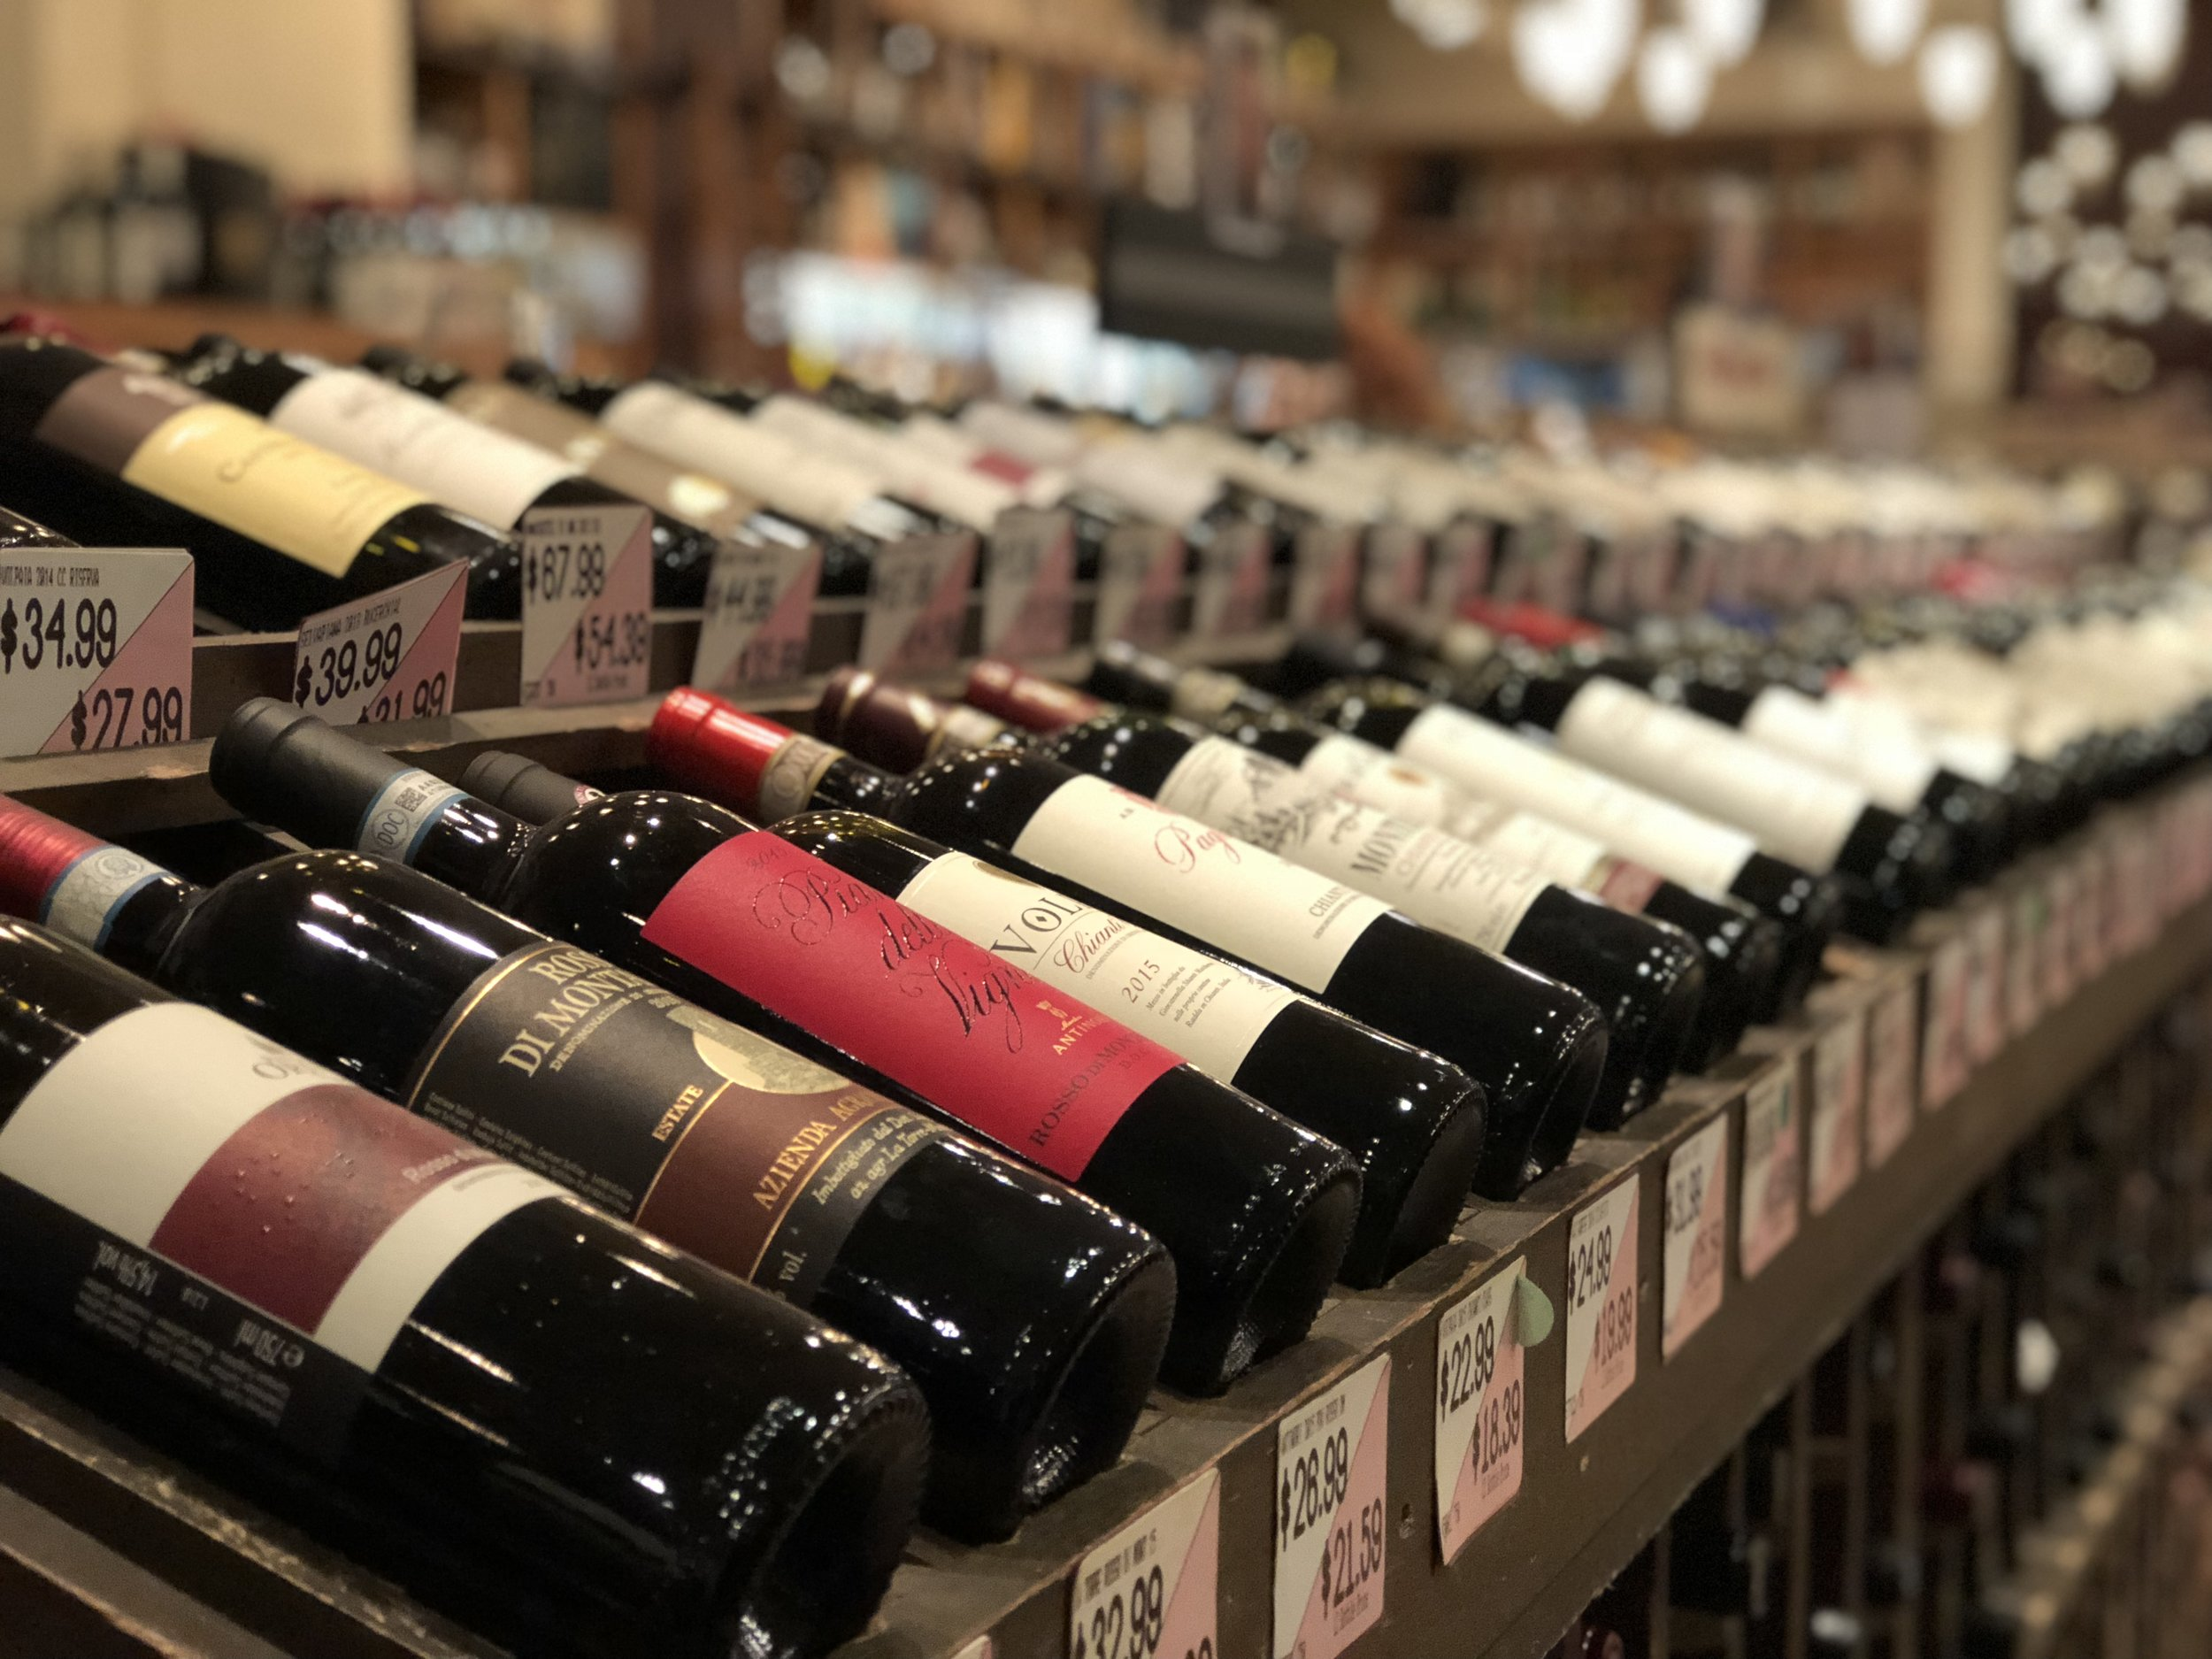 Wine connoisseurs at USQ Wines & Spirits can help you choose the perfect bottle.